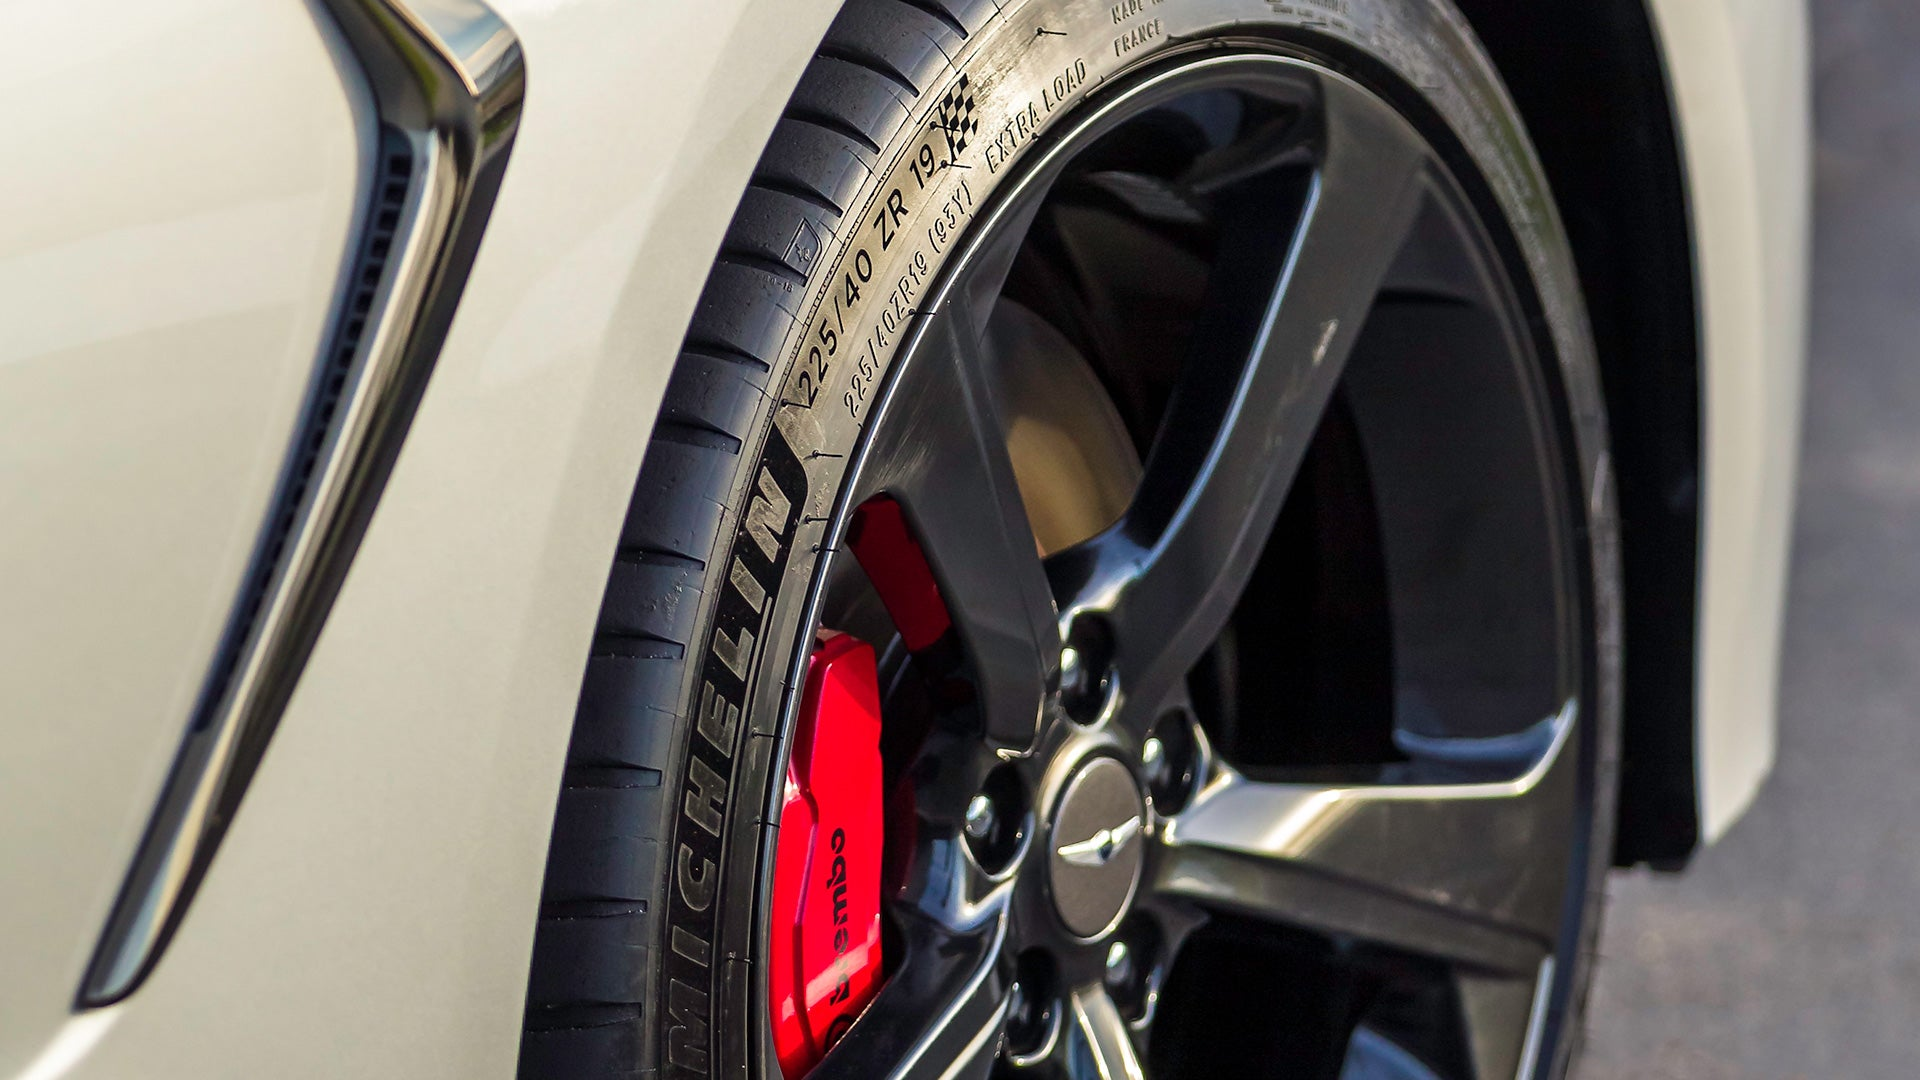 A close-up of a Genesis G70 wheel and tire.